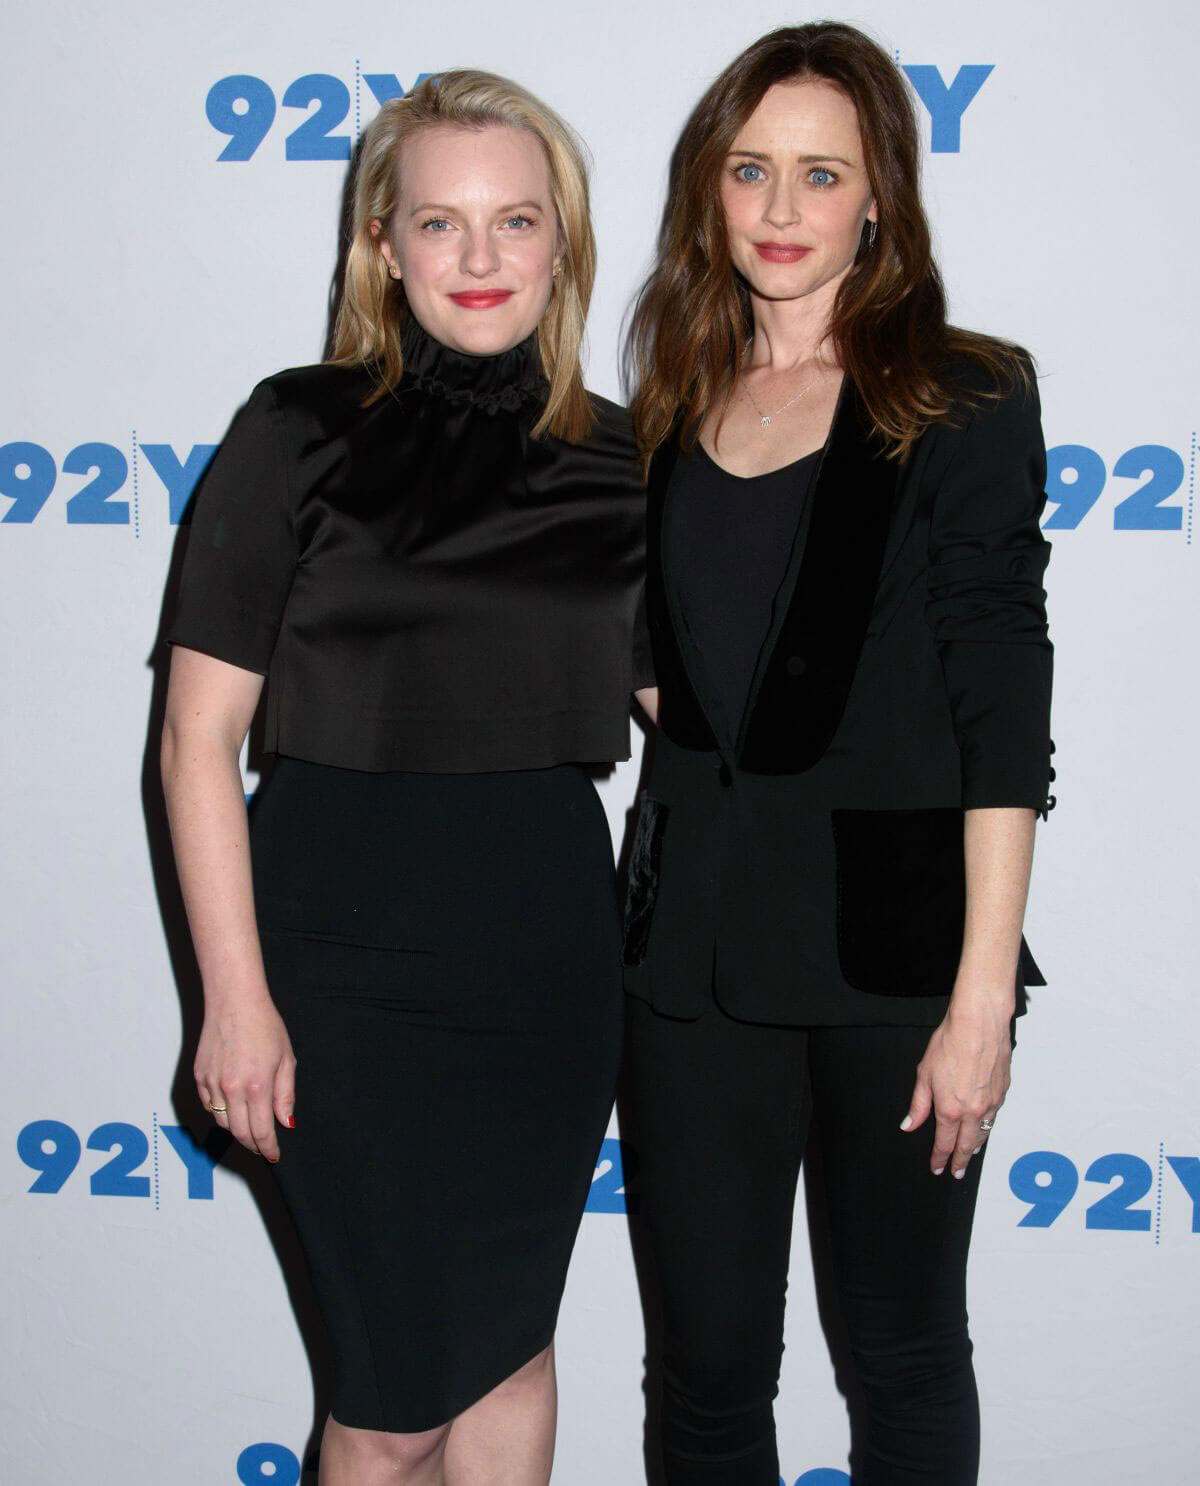 Elisabeth Moss Stills at The Handmaid's Tale TV Show Screening in New York